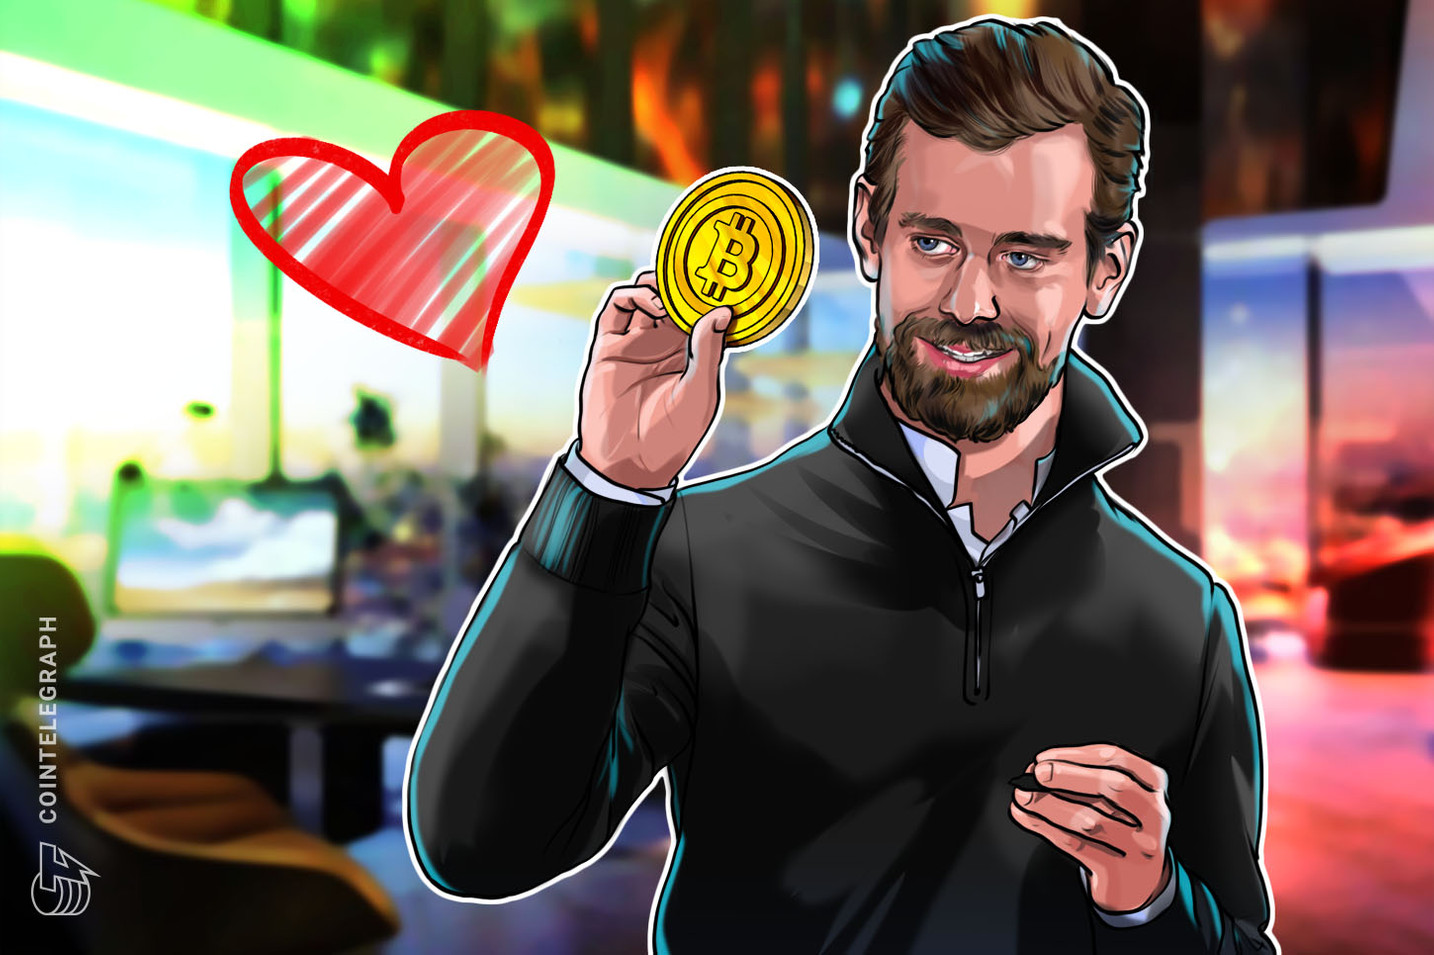 Twitter, Square Founder Jack Dorsey Says 'We Love You Bitcoin'